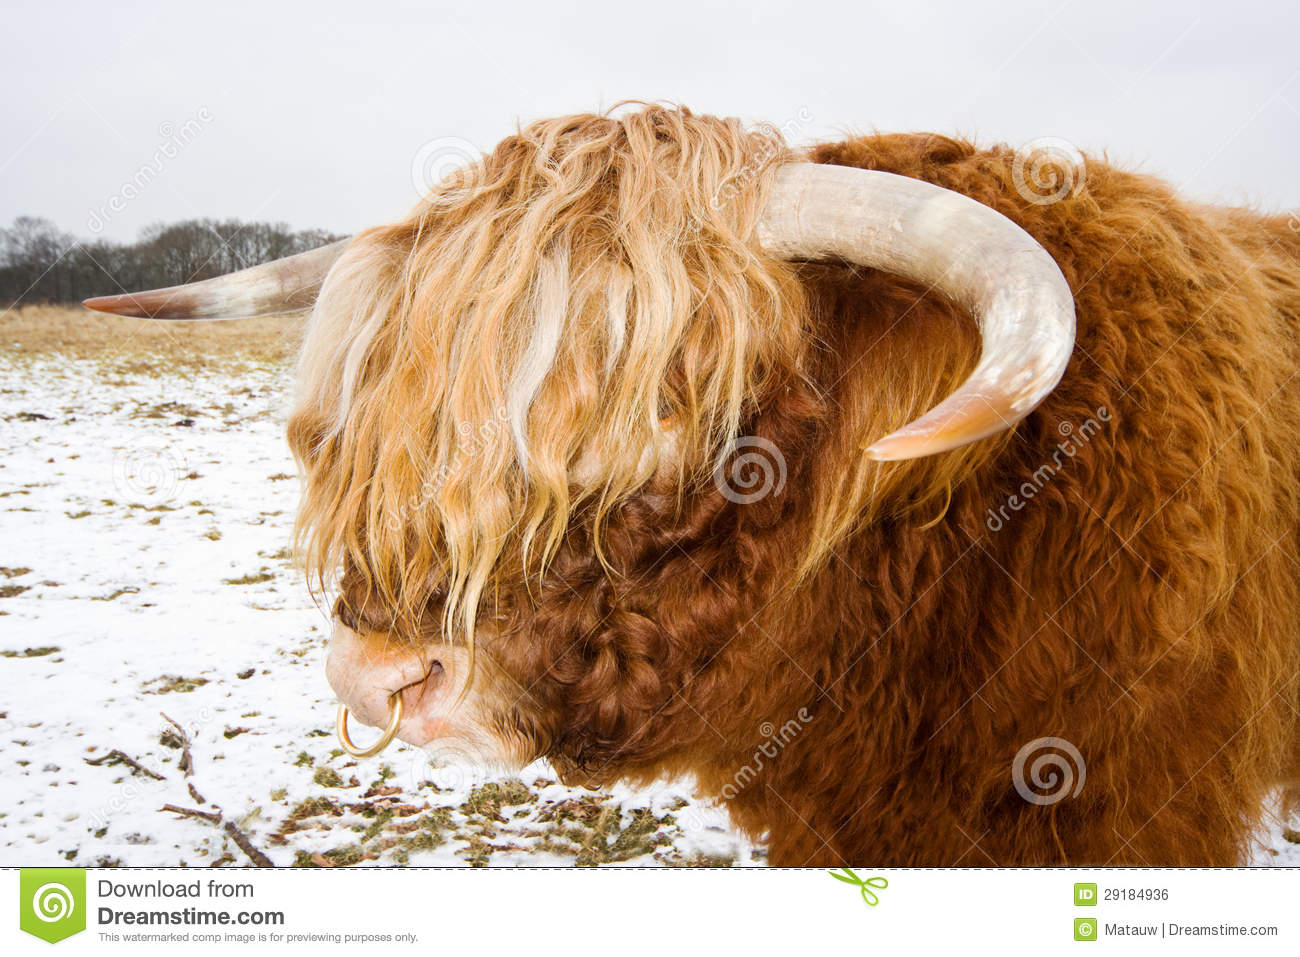 Highland Bull With Ring In Nose Stock Photo Image Of Beast Animal